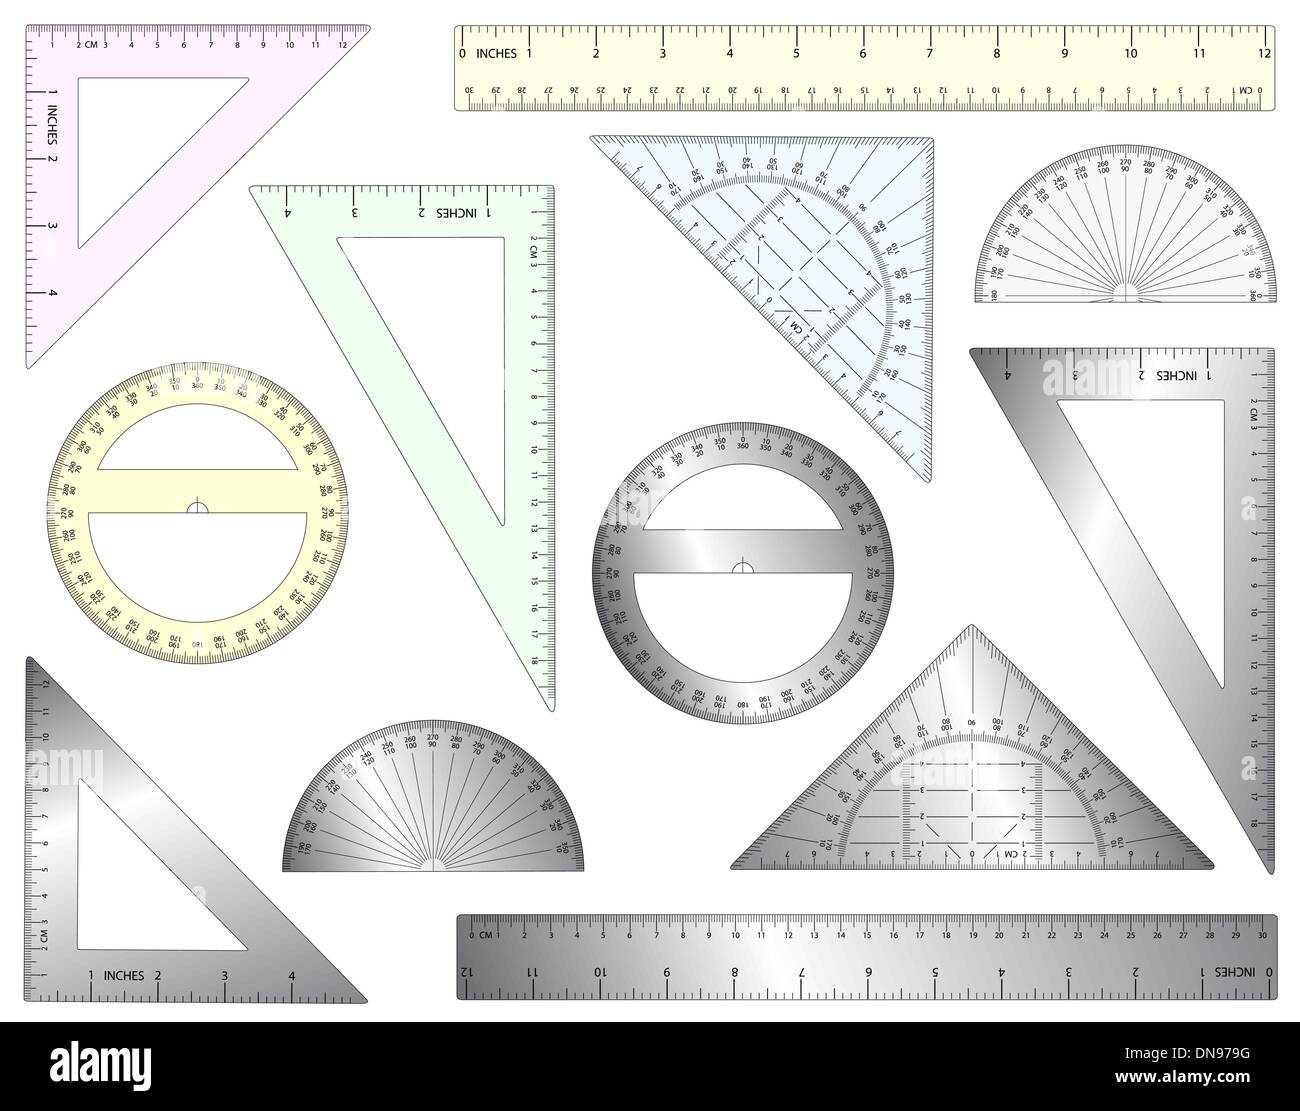 Rulers - Stock Vector